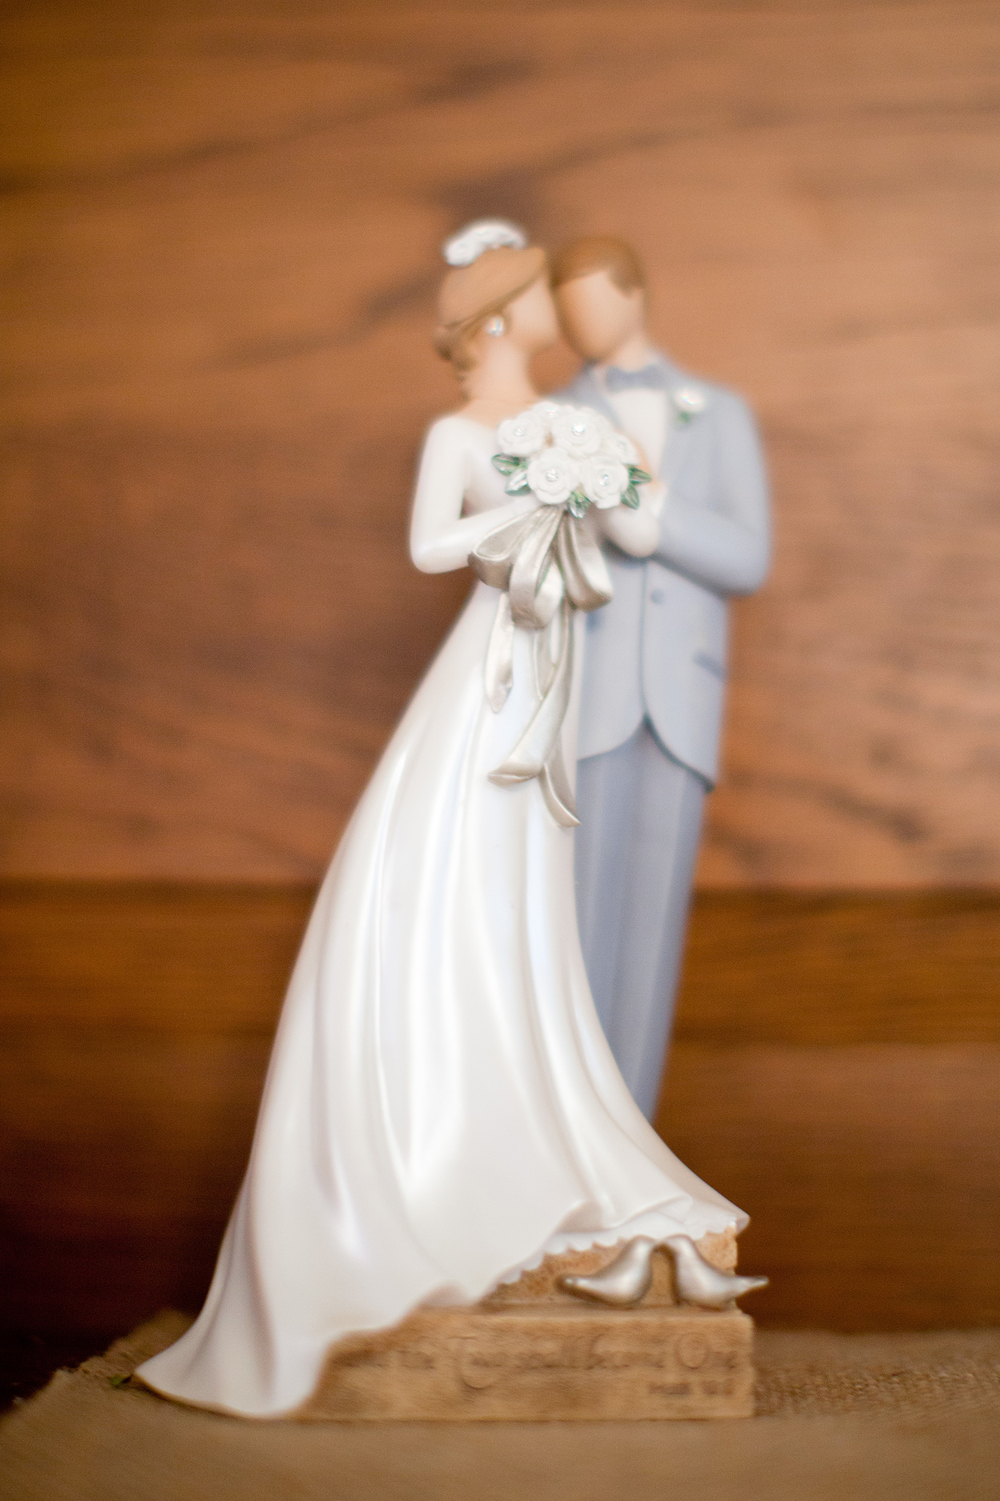 A Bride & Groom Statuette